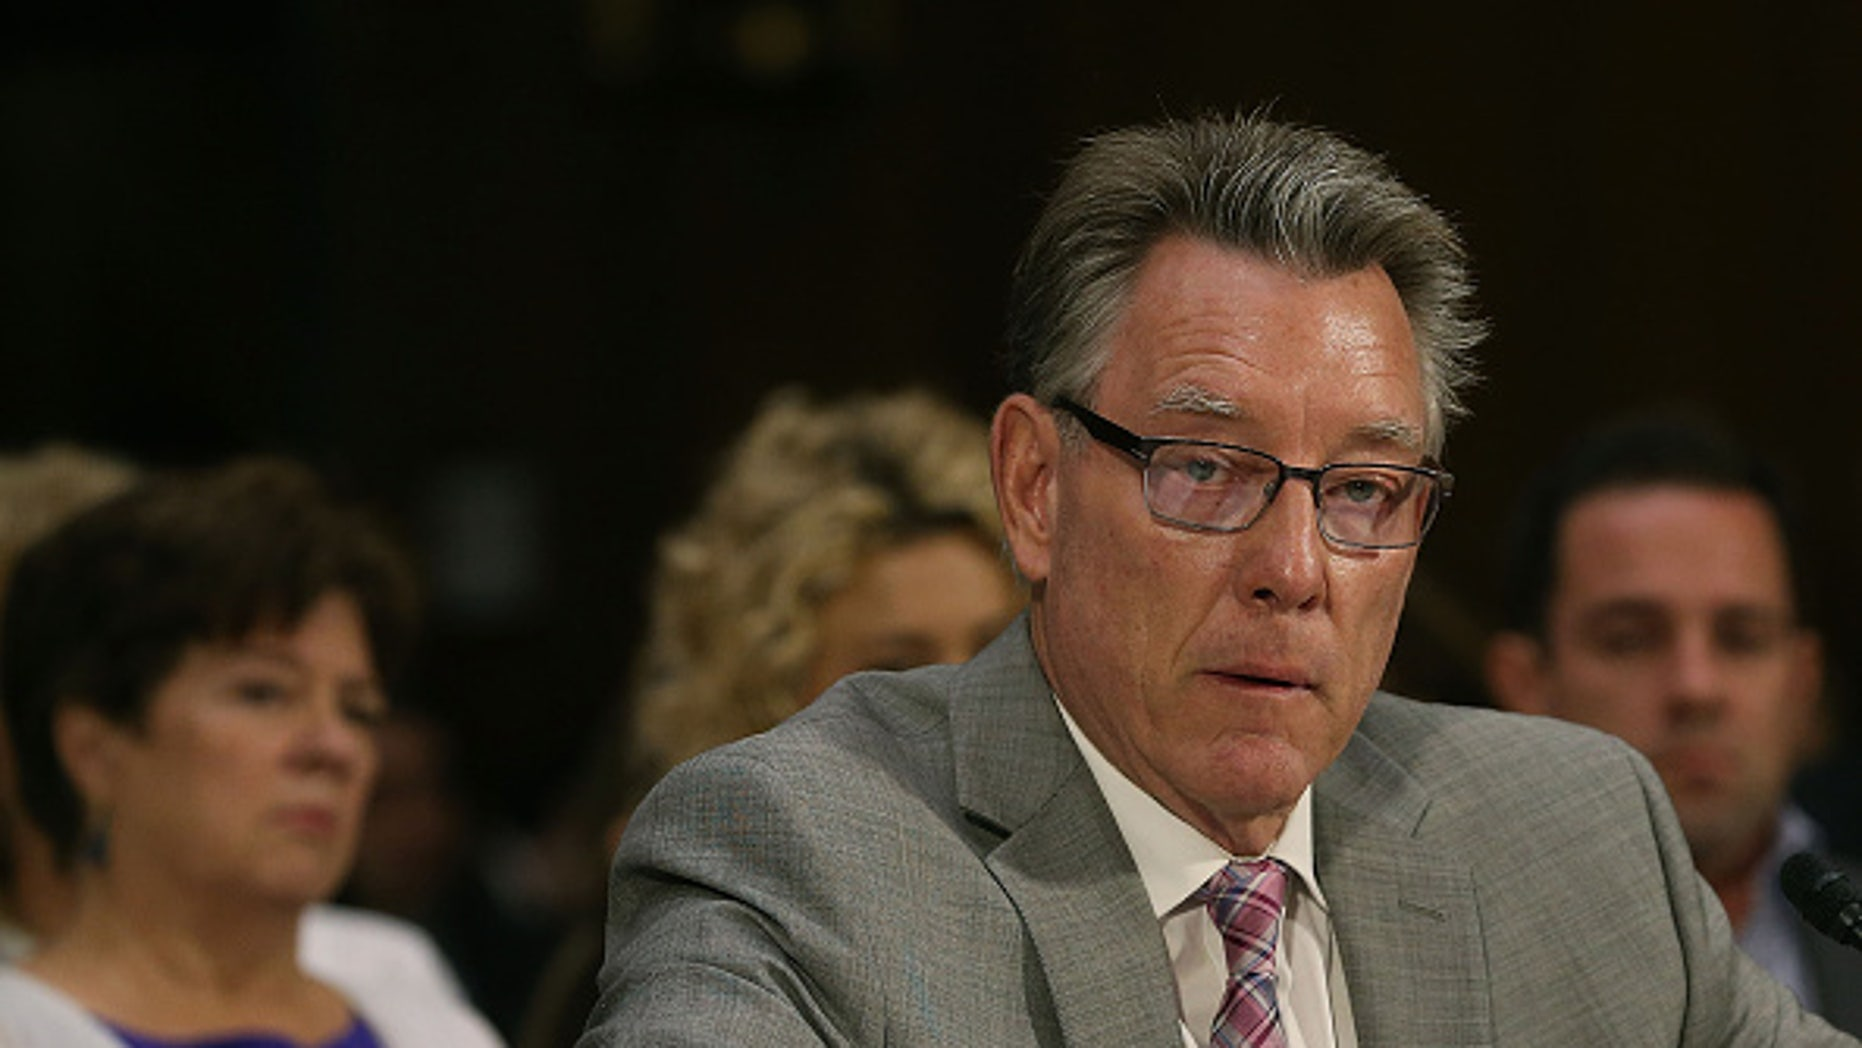 WASHINGTON, DC - JULY 21:   Jim Steinle, father of  Kathryn Steinle who was killed by an illegal immigrant in San Francisco, testifies during a Senate Judiciary Committee hearing on Capitol Hill.